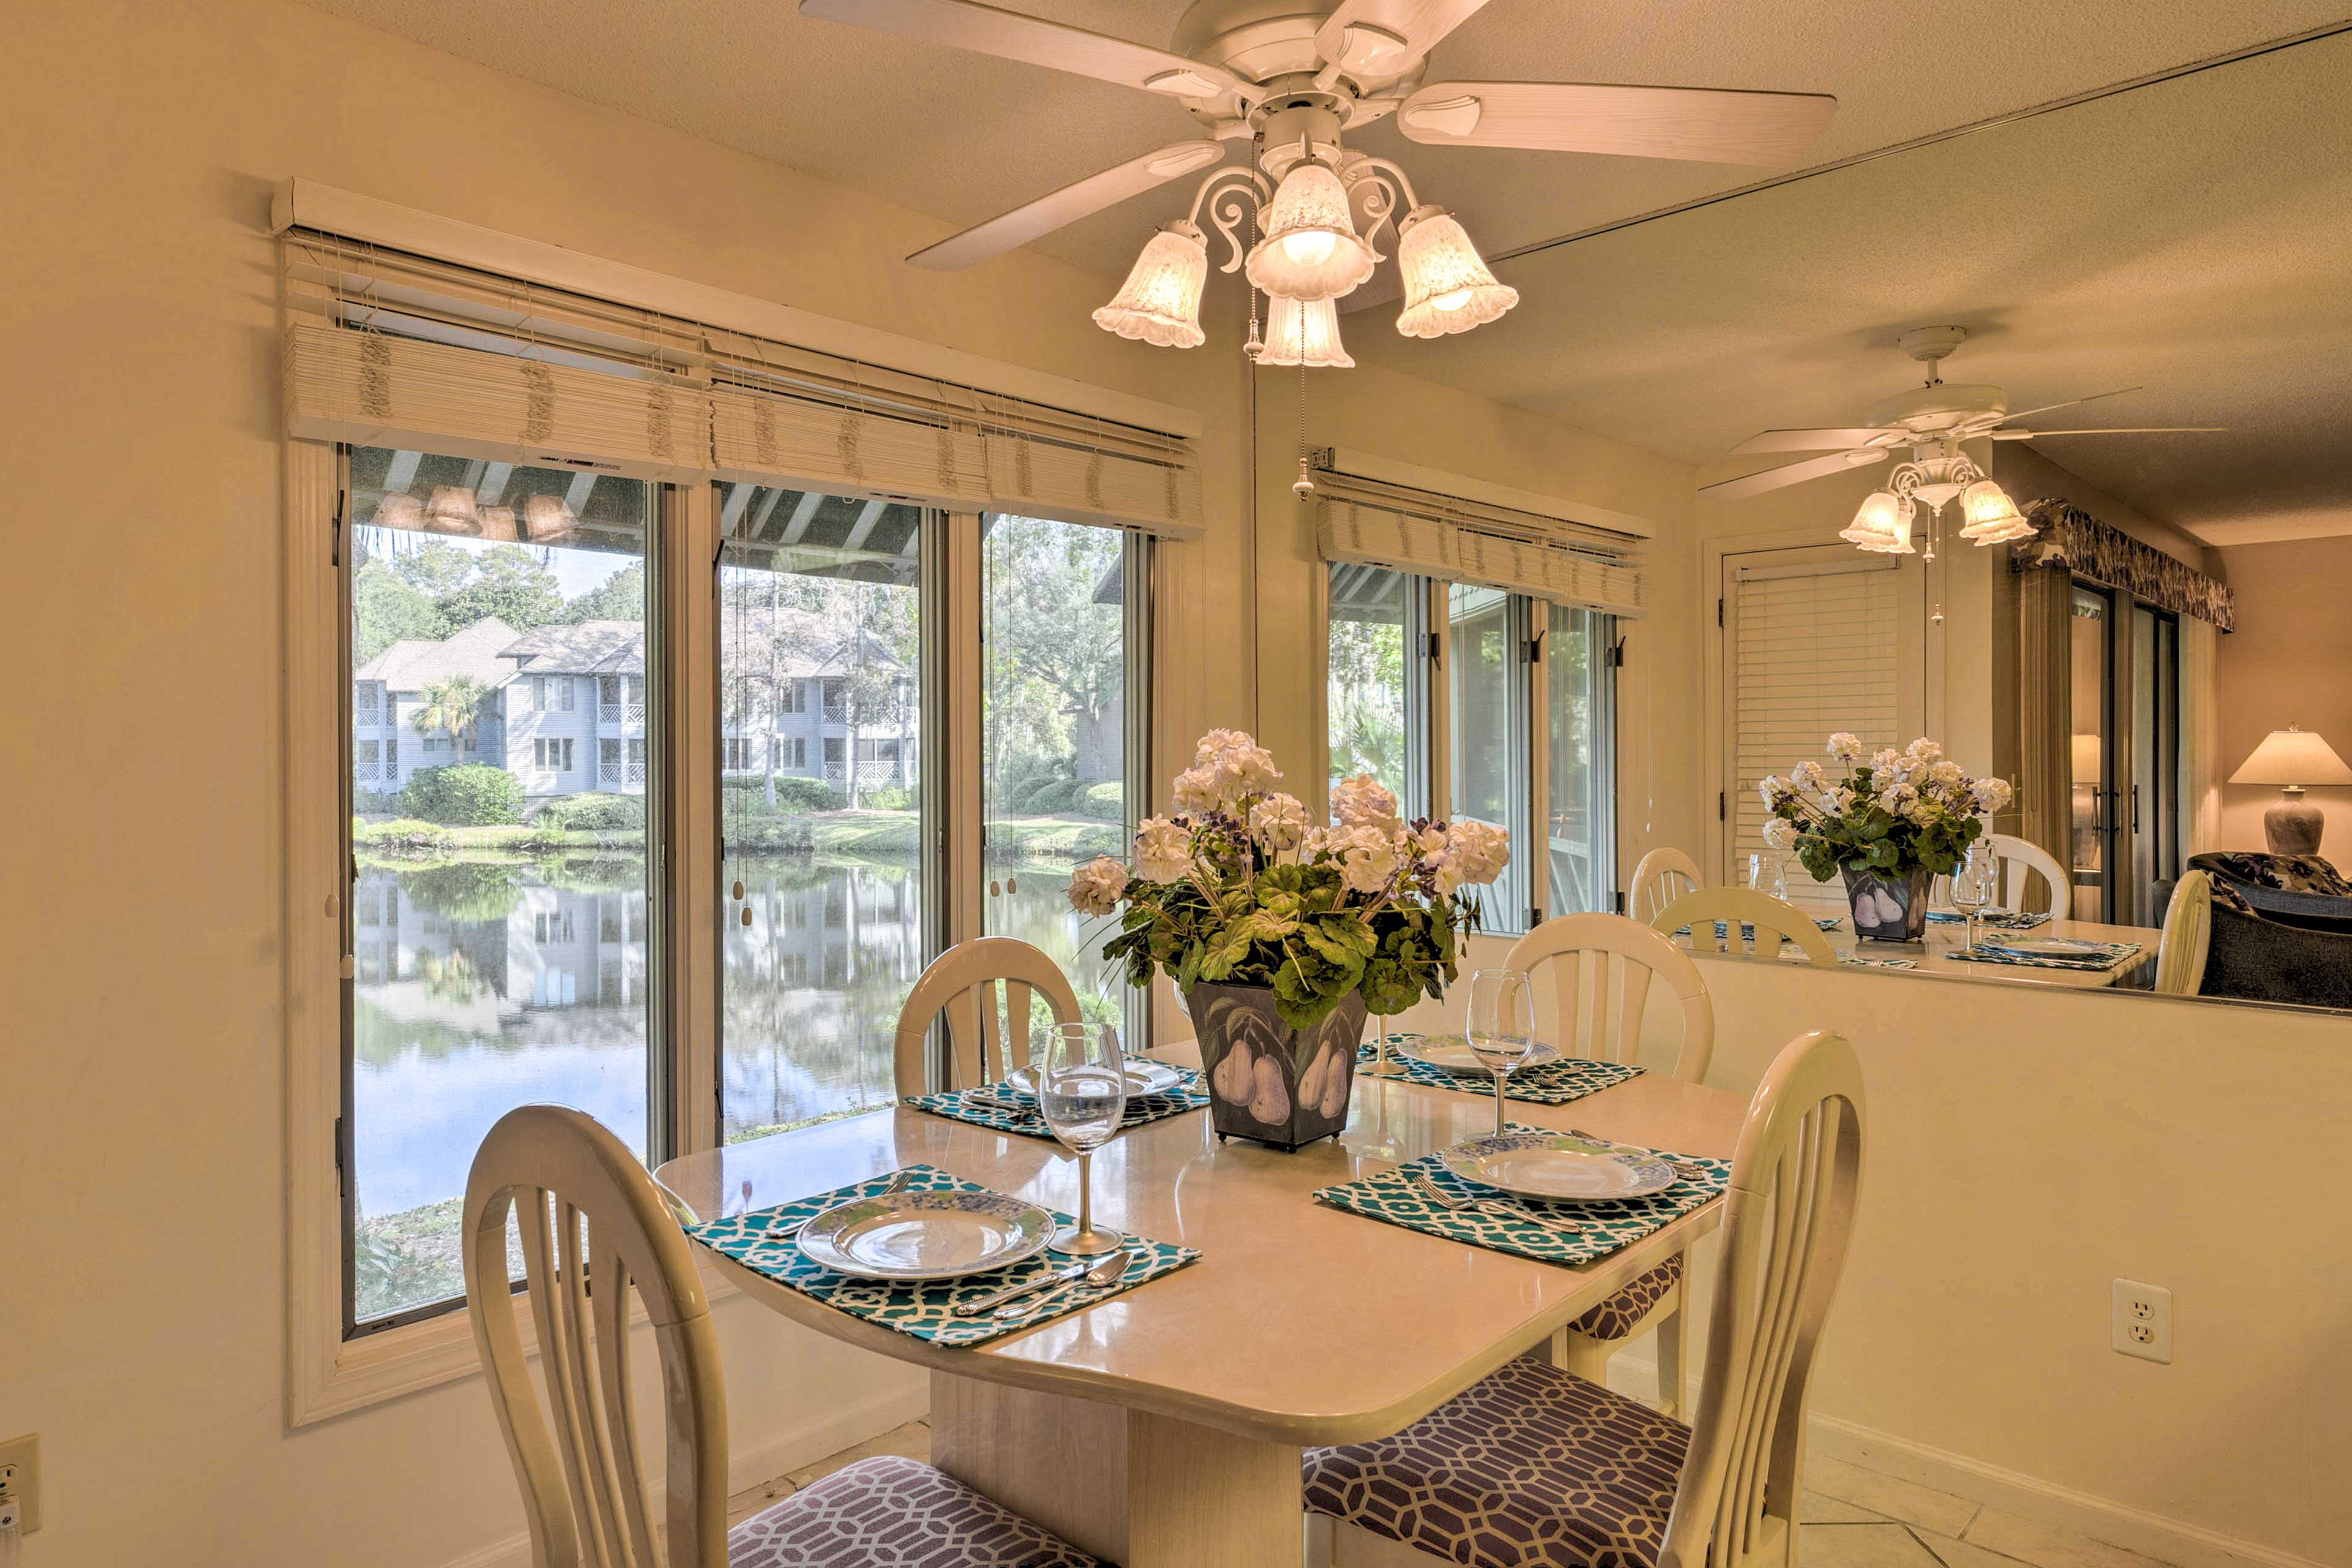 The 4-person table boasts waterfront views.